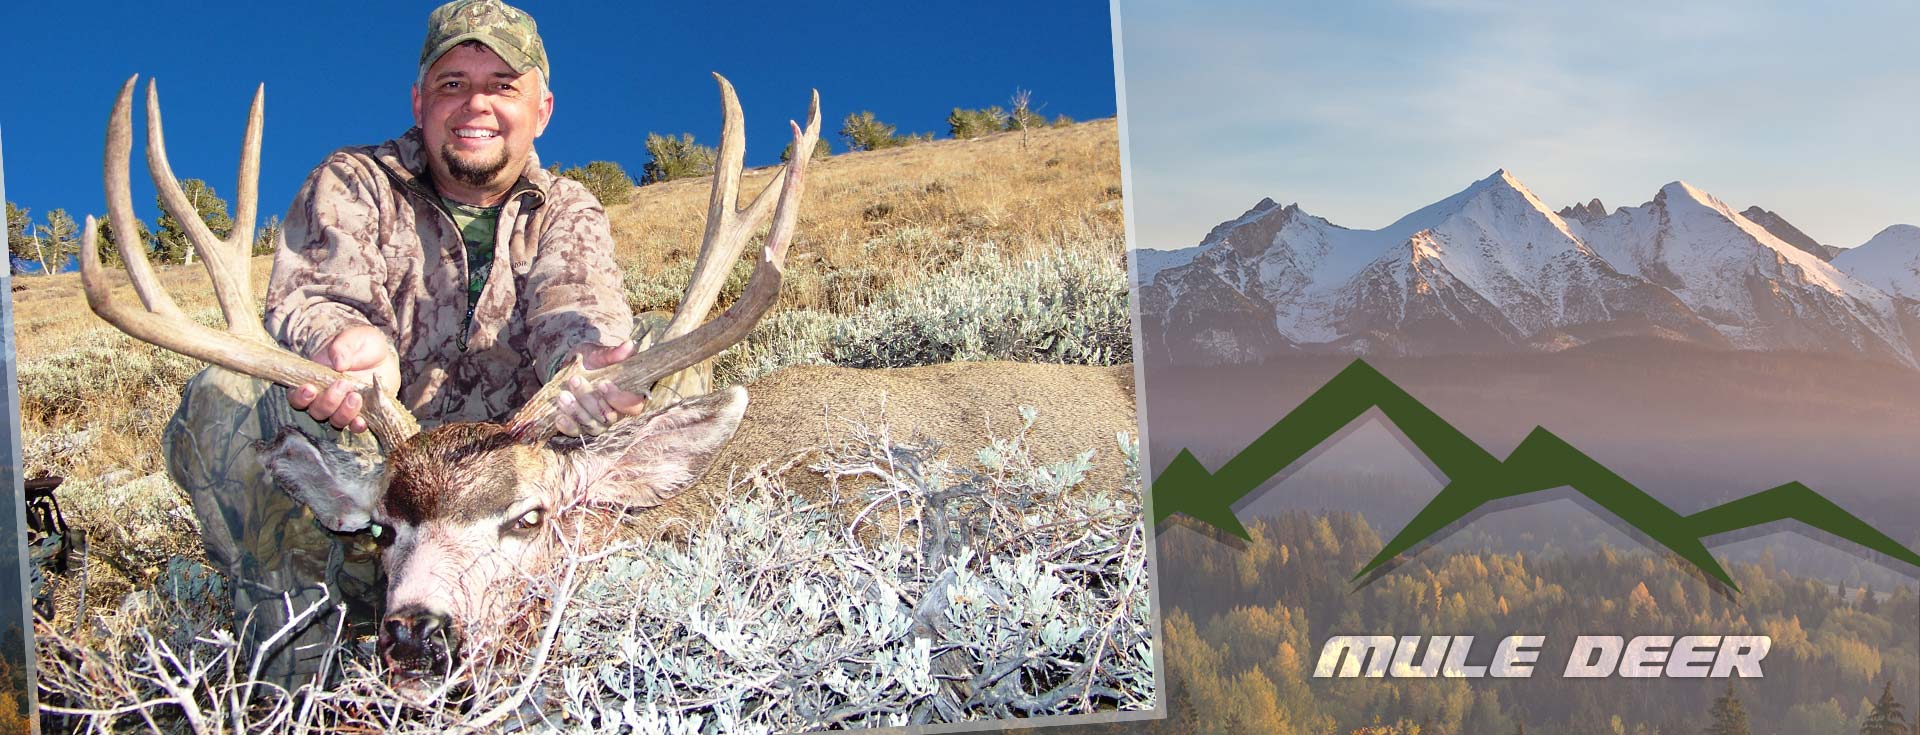 Nevada Mule Deer Hunting Guide & Outfitter